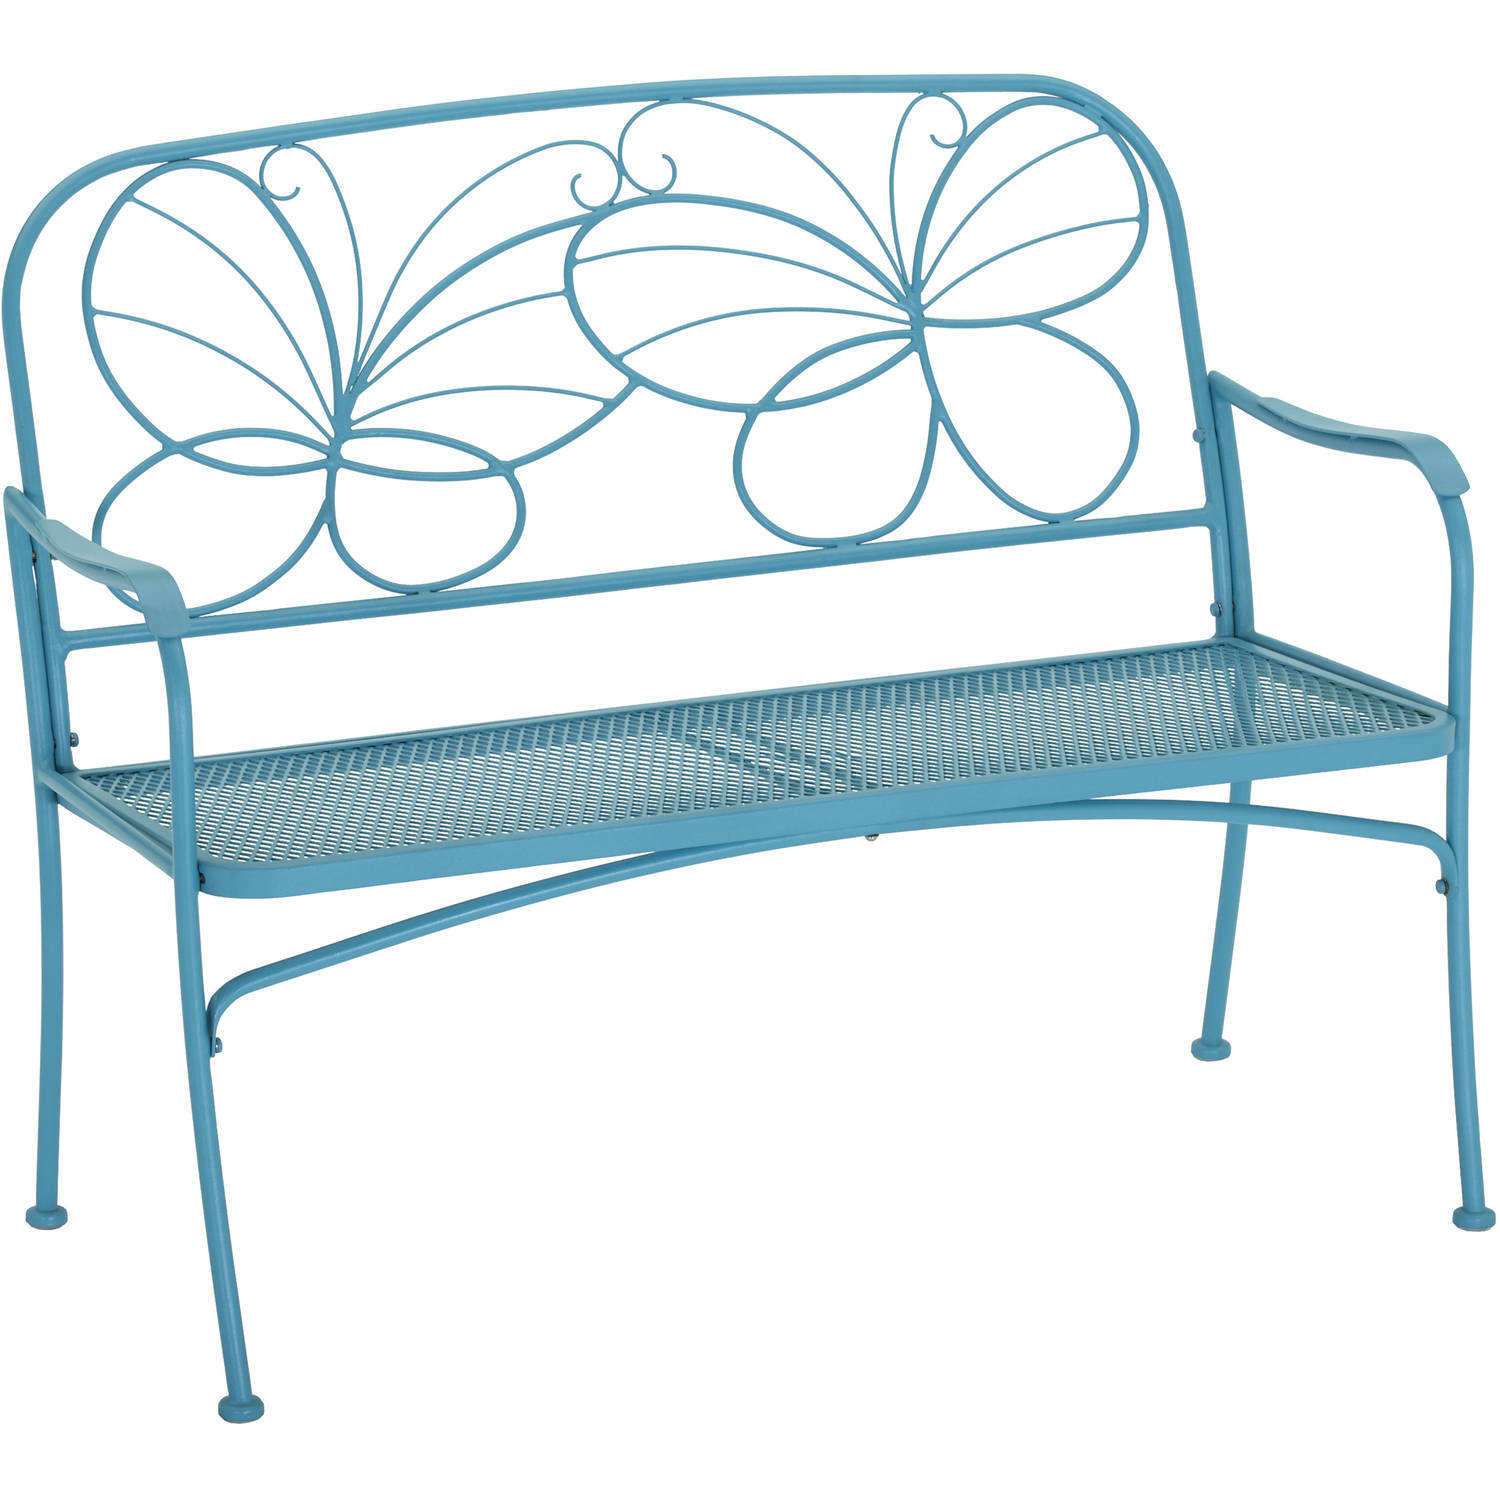 Mainstays Butterfly Outdoor Patio Bench by Zhejiang Wude Furniture